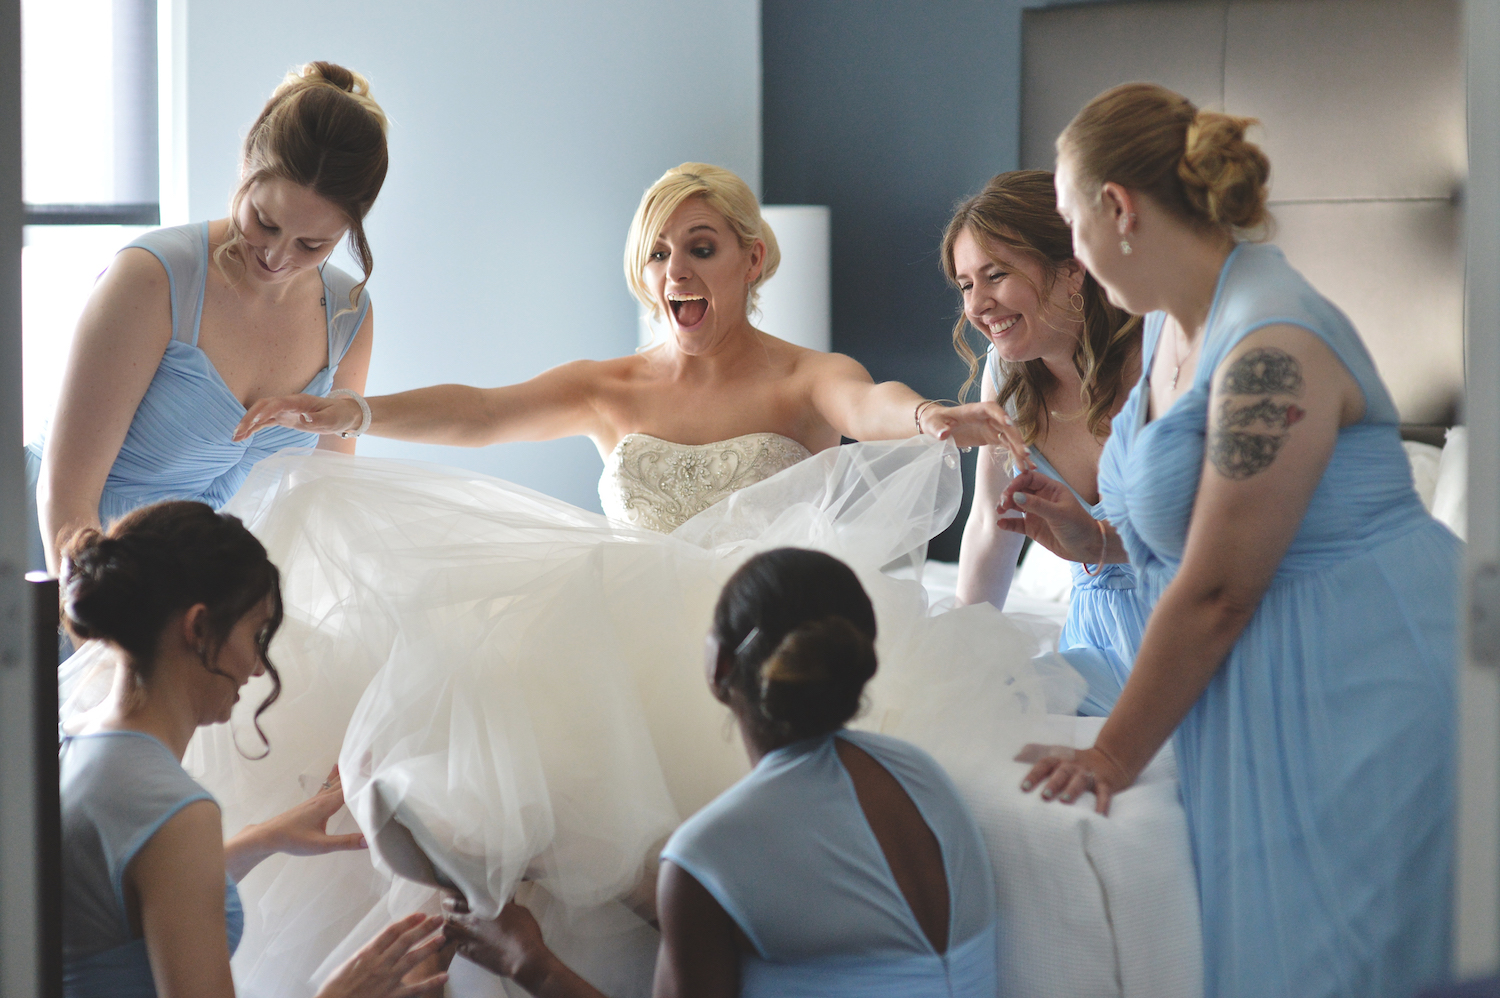 laura-laughing-with-bridesmaids-prep-nj-wedding-photography